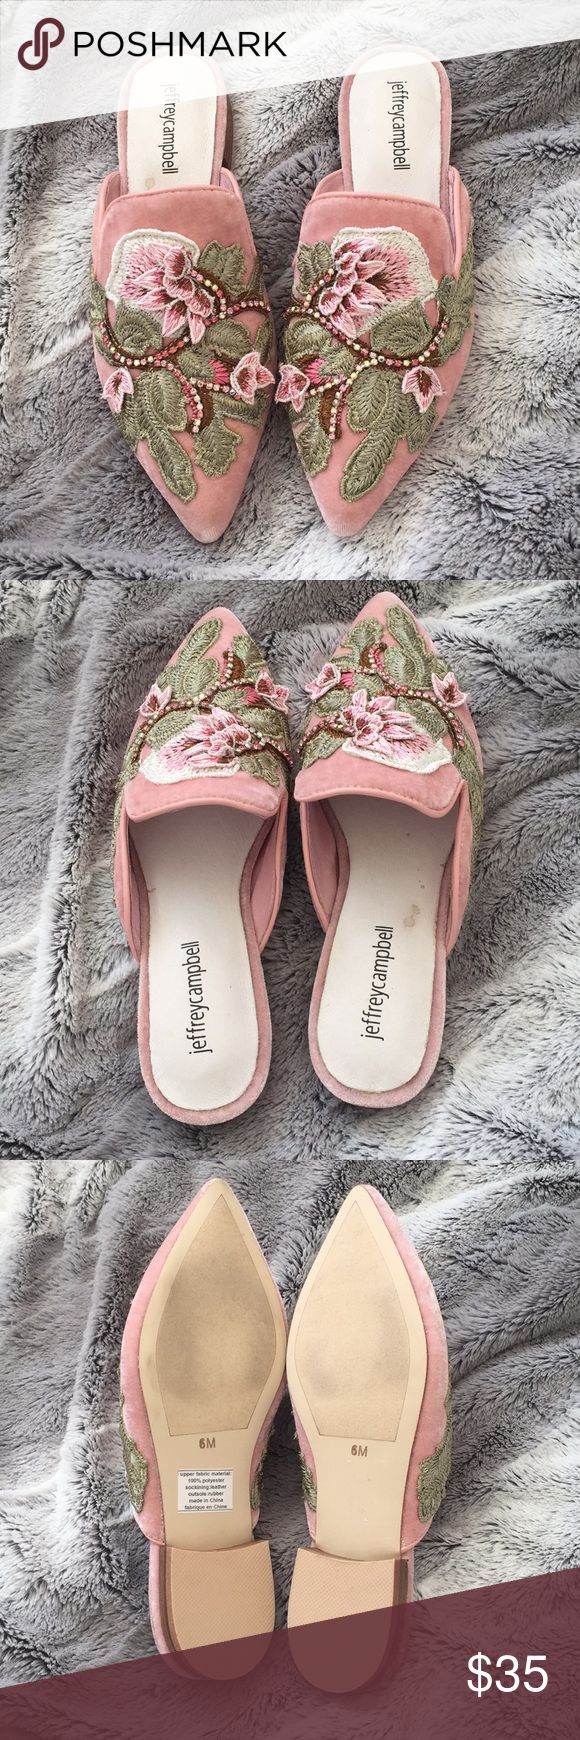 JEFFREY CAMPBELL FLATS Valencia Flats in Blush Velvet by Jeffrey Campbell of Free People.  There's a stain by the logo. I bought it like that from the store. It's brand new purchased, but it's worn on the bottom probably from being tried on in stores.  Velvet mule style flats featuring an ornate design with floral embroidery and beaded embellishments on the top of the foot.  Pointed toe Subtle block heel Padded footbed for support Jeffrey Campbell Shoes Flats & Loafers